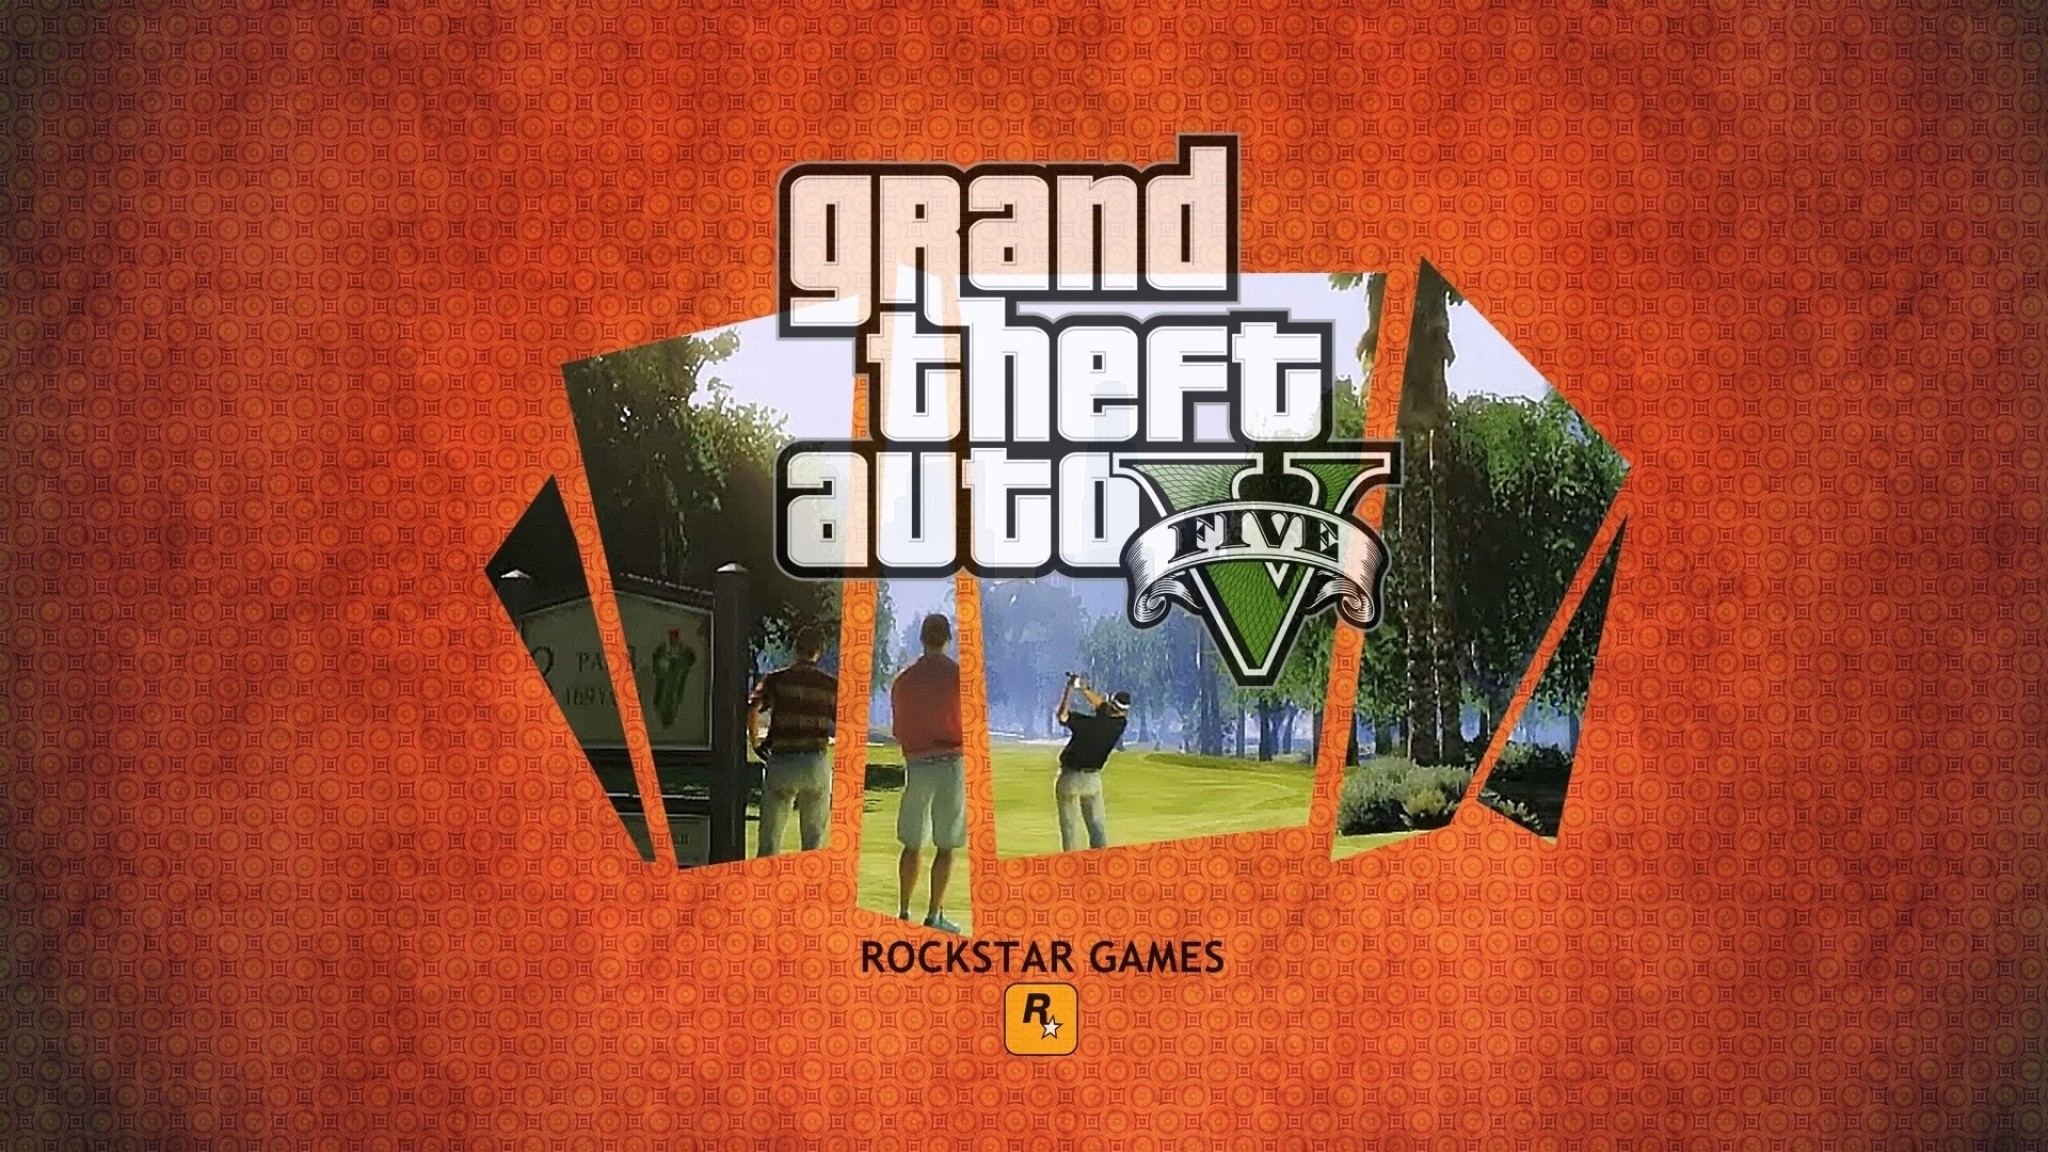 Preview wallpaper gta, grand theft auto 5, graphics, background, shot  2048×1152